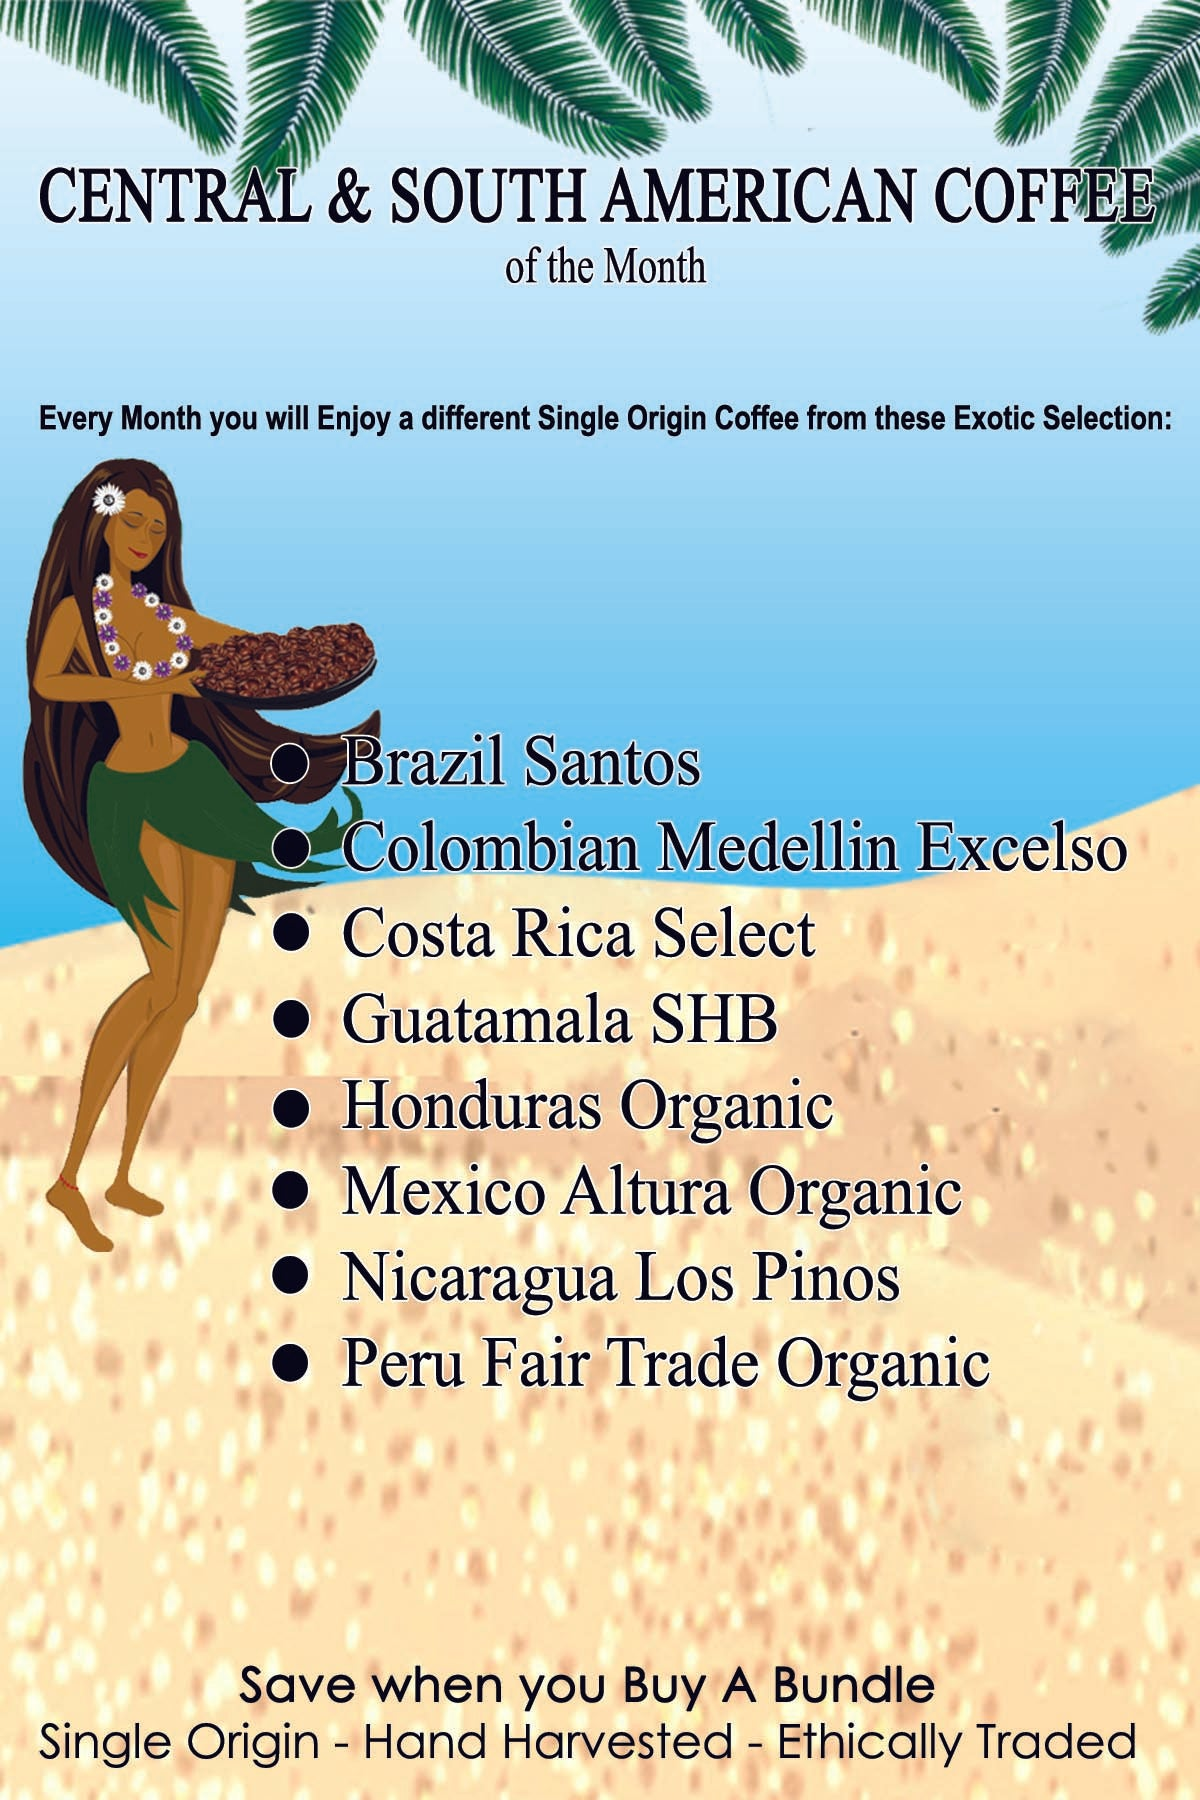 Central & South American Coffee of The Month Subscription - Going Native Coffee Club